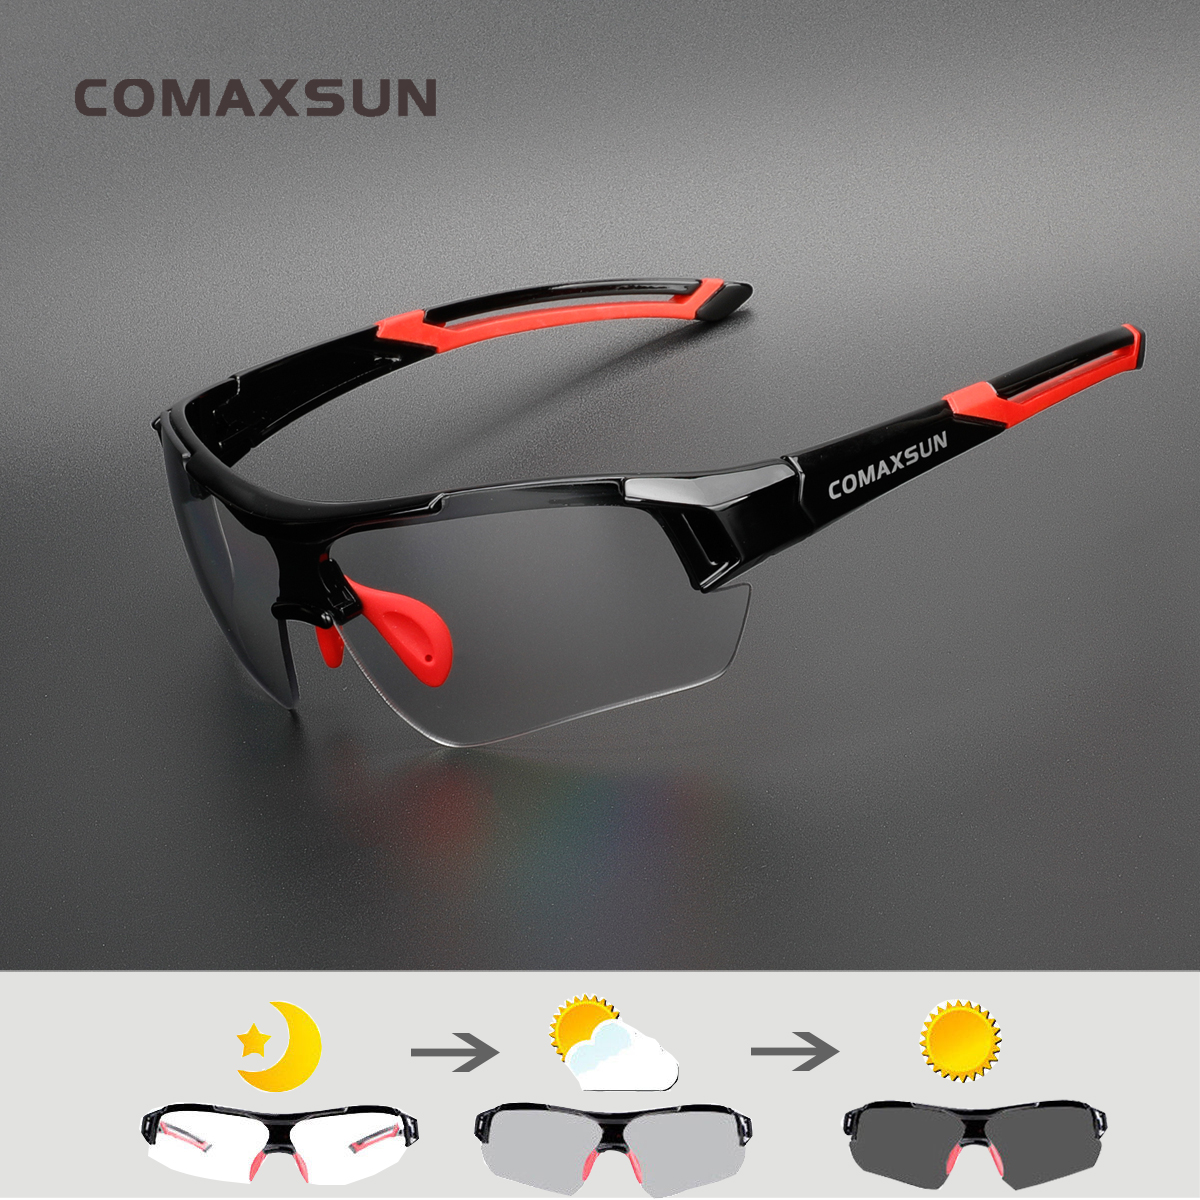 COMAXSUN Photochromic Cycling Glasses Discoloration Glasses MTB Road Bike Sport Sunglasses Bike Eyewear Bicycle Goggles 2 Style